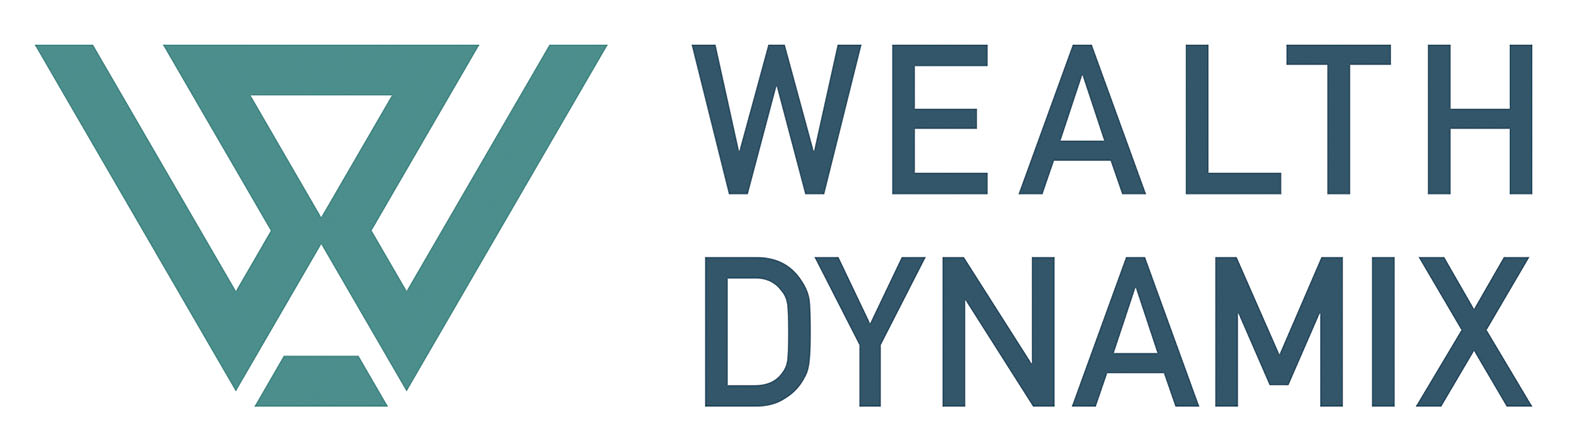 Wealth Dynamix logo NEW 2019